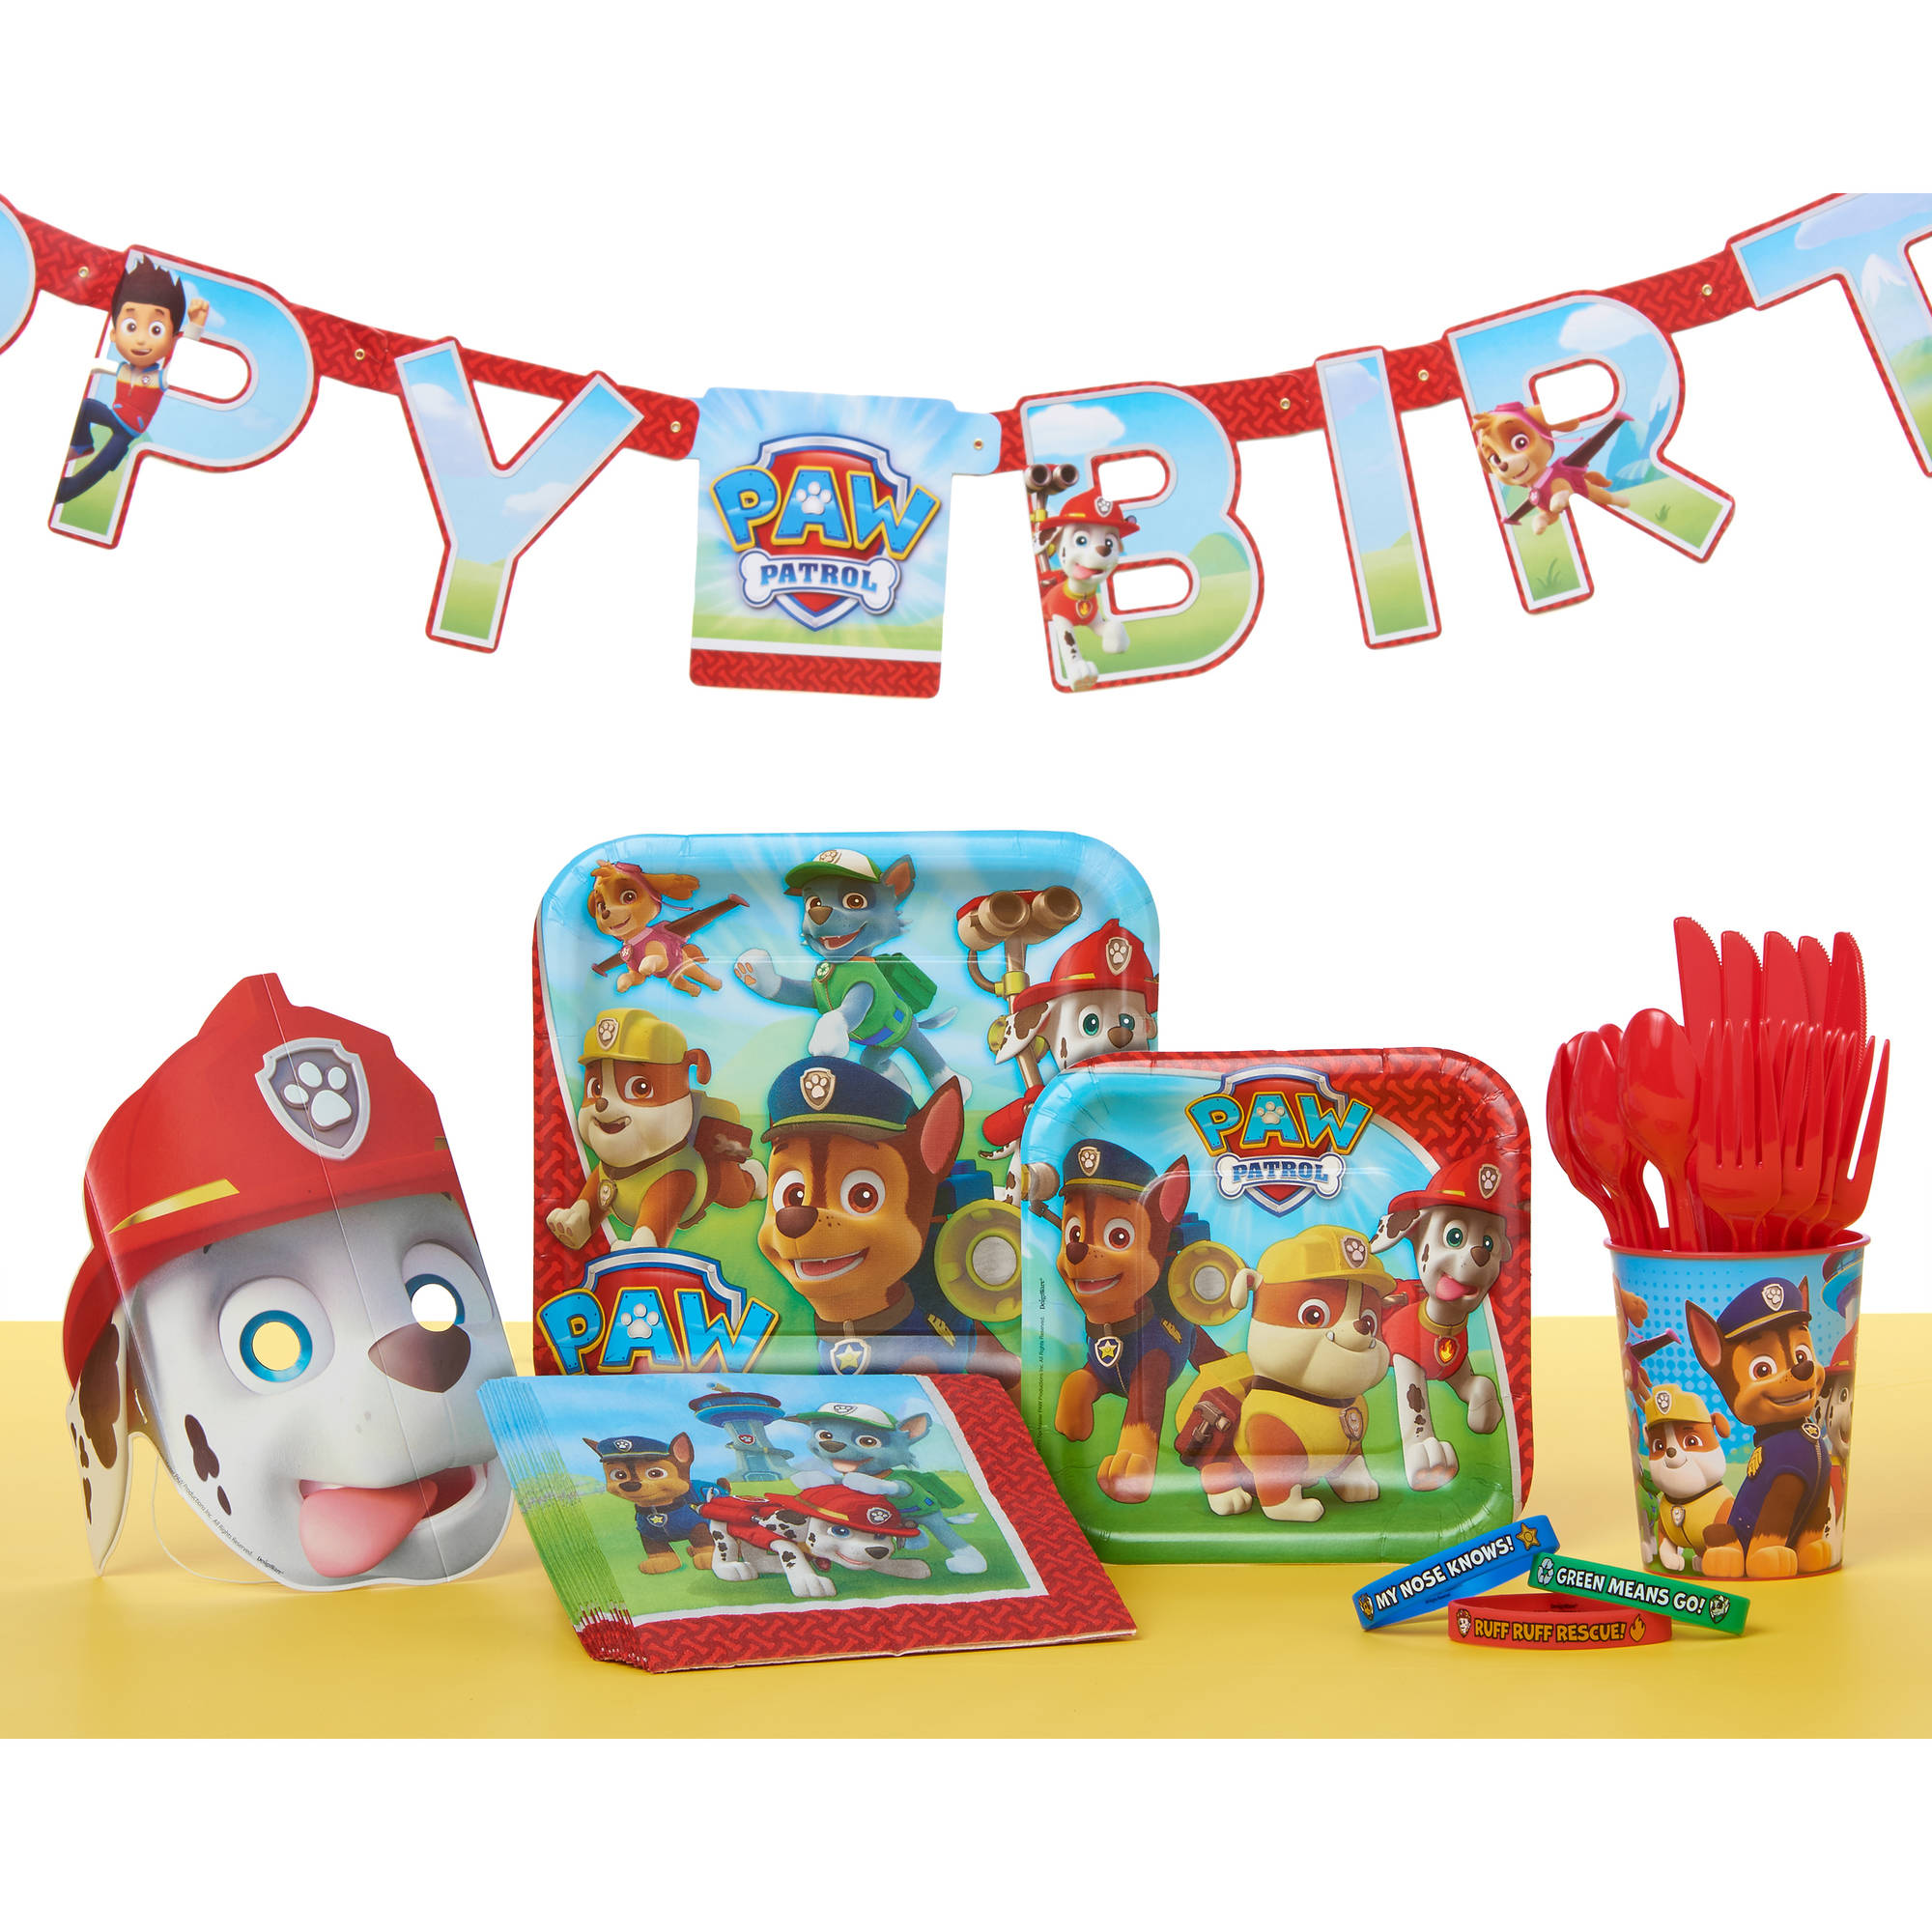 PAW Patrol Party Supplies Walmartcom